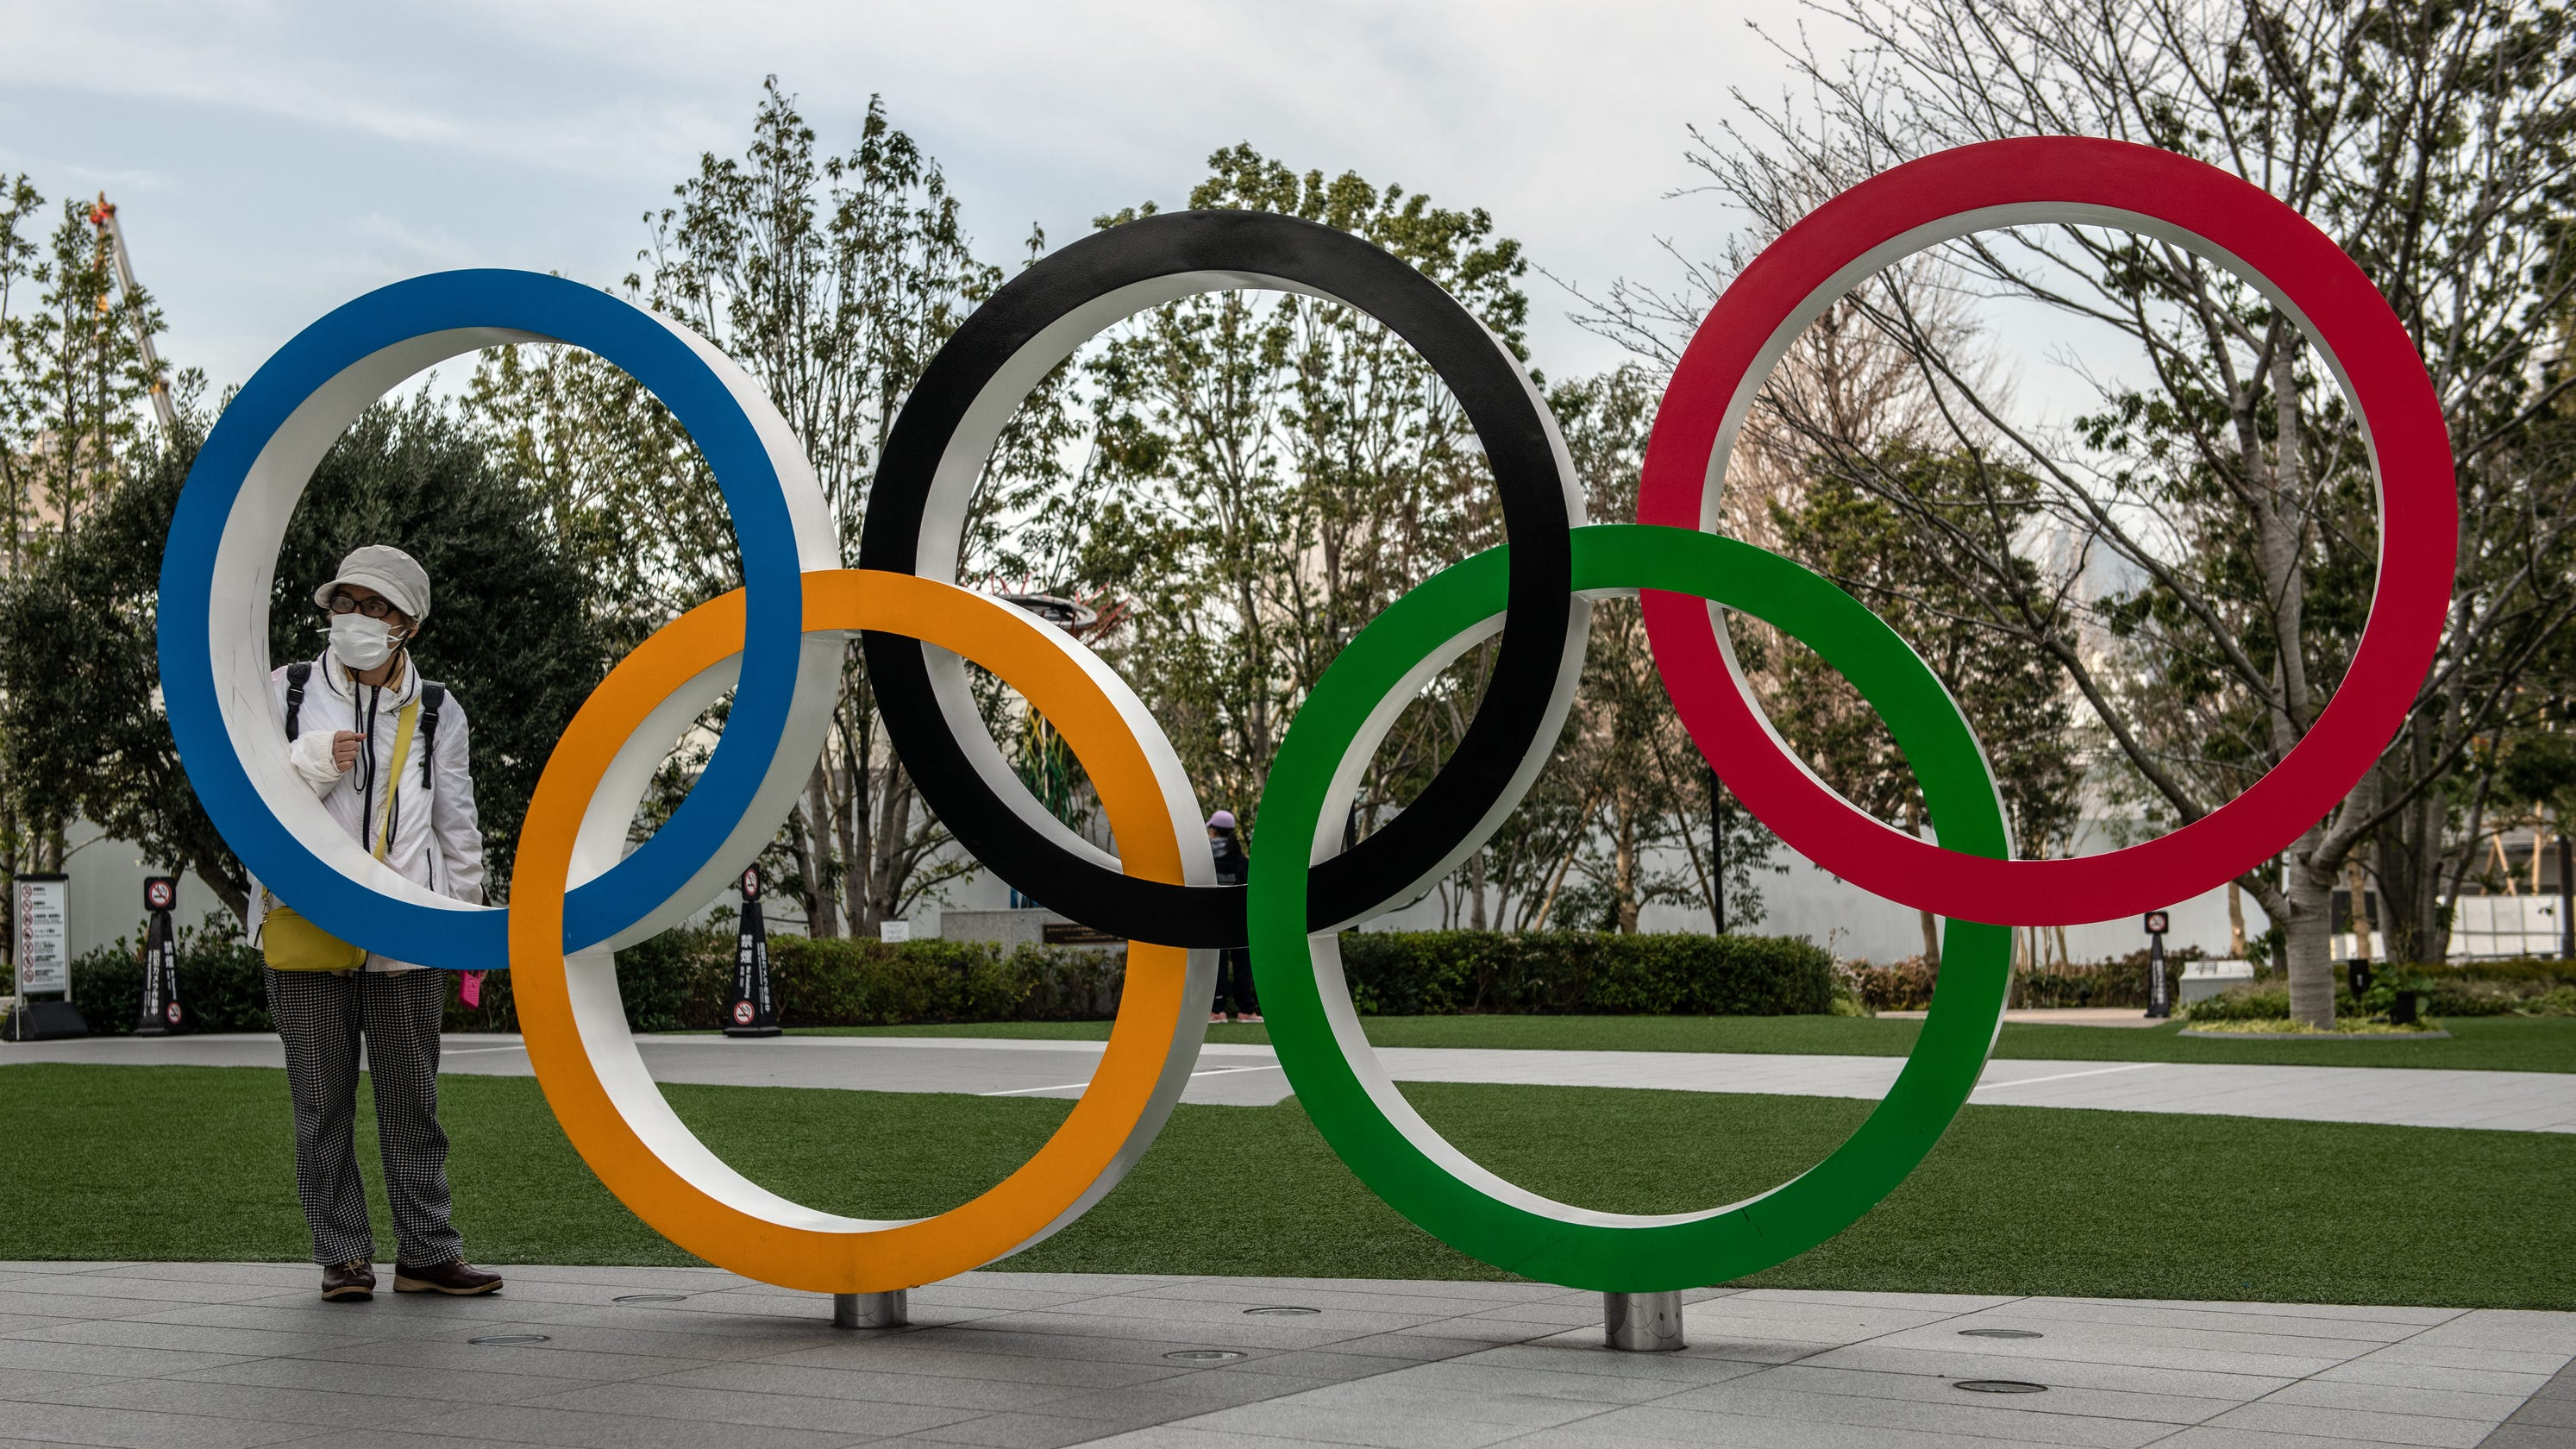 IOC member says 2020 Tokyo Olympics will be postponed because of coronavirus pandemic